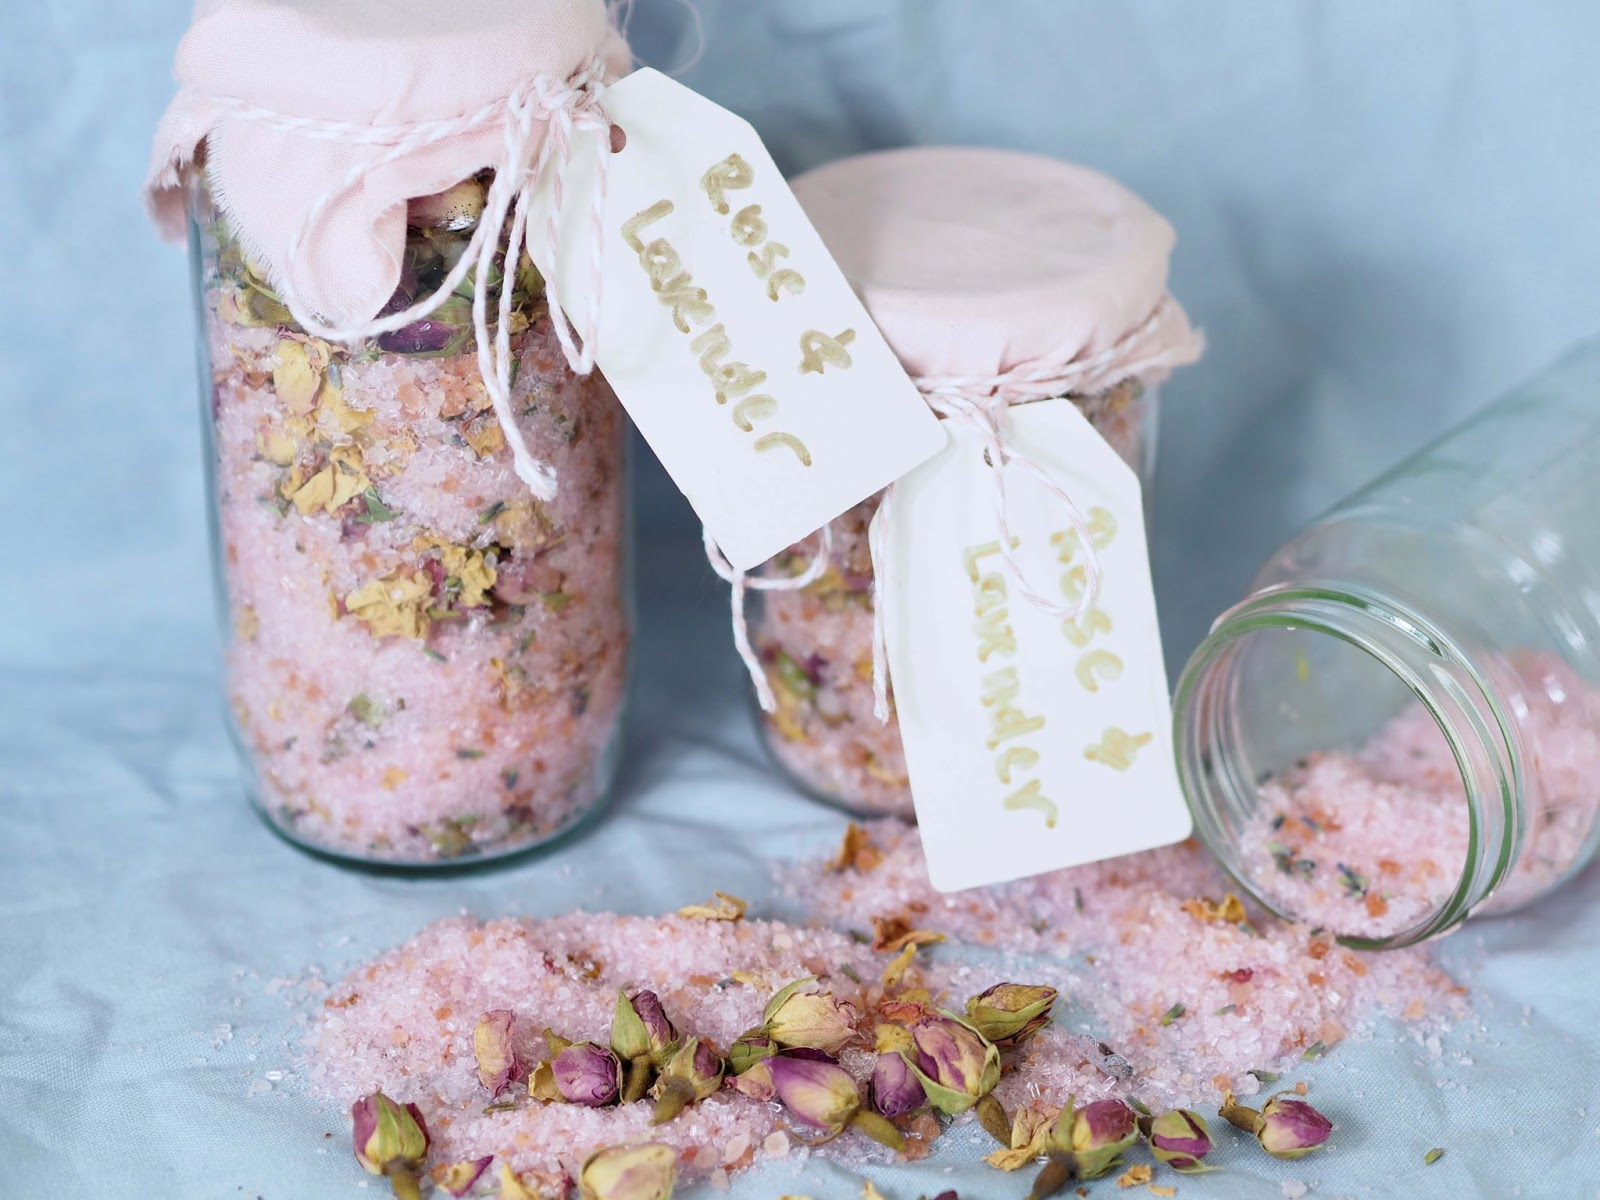 DIY bath salts with rose and lavender